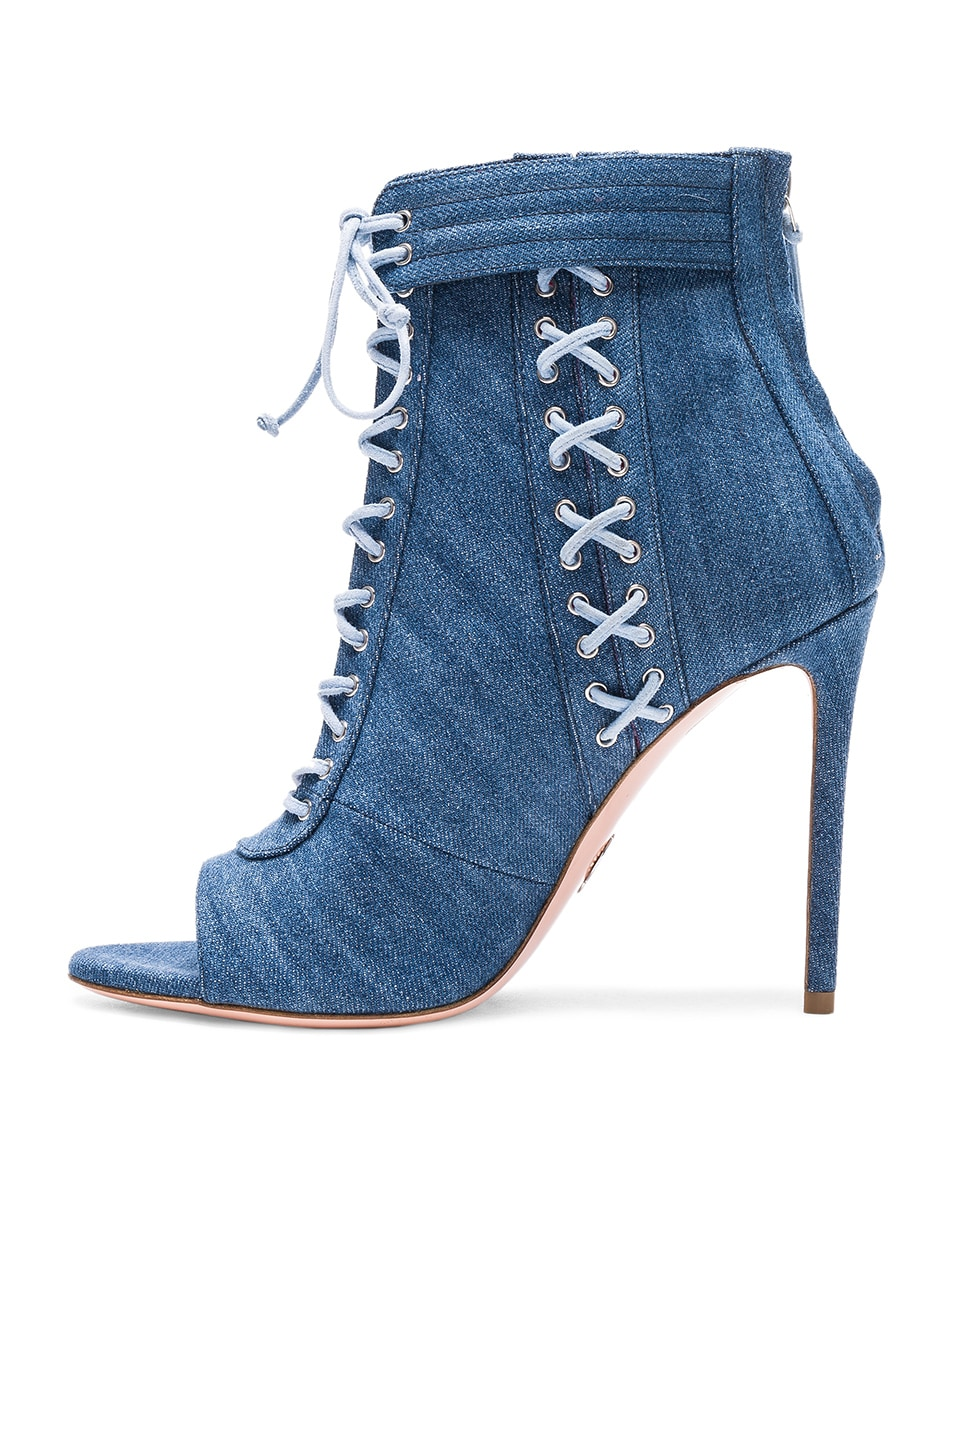 OSCAR TIYE Denim Sami T Booties